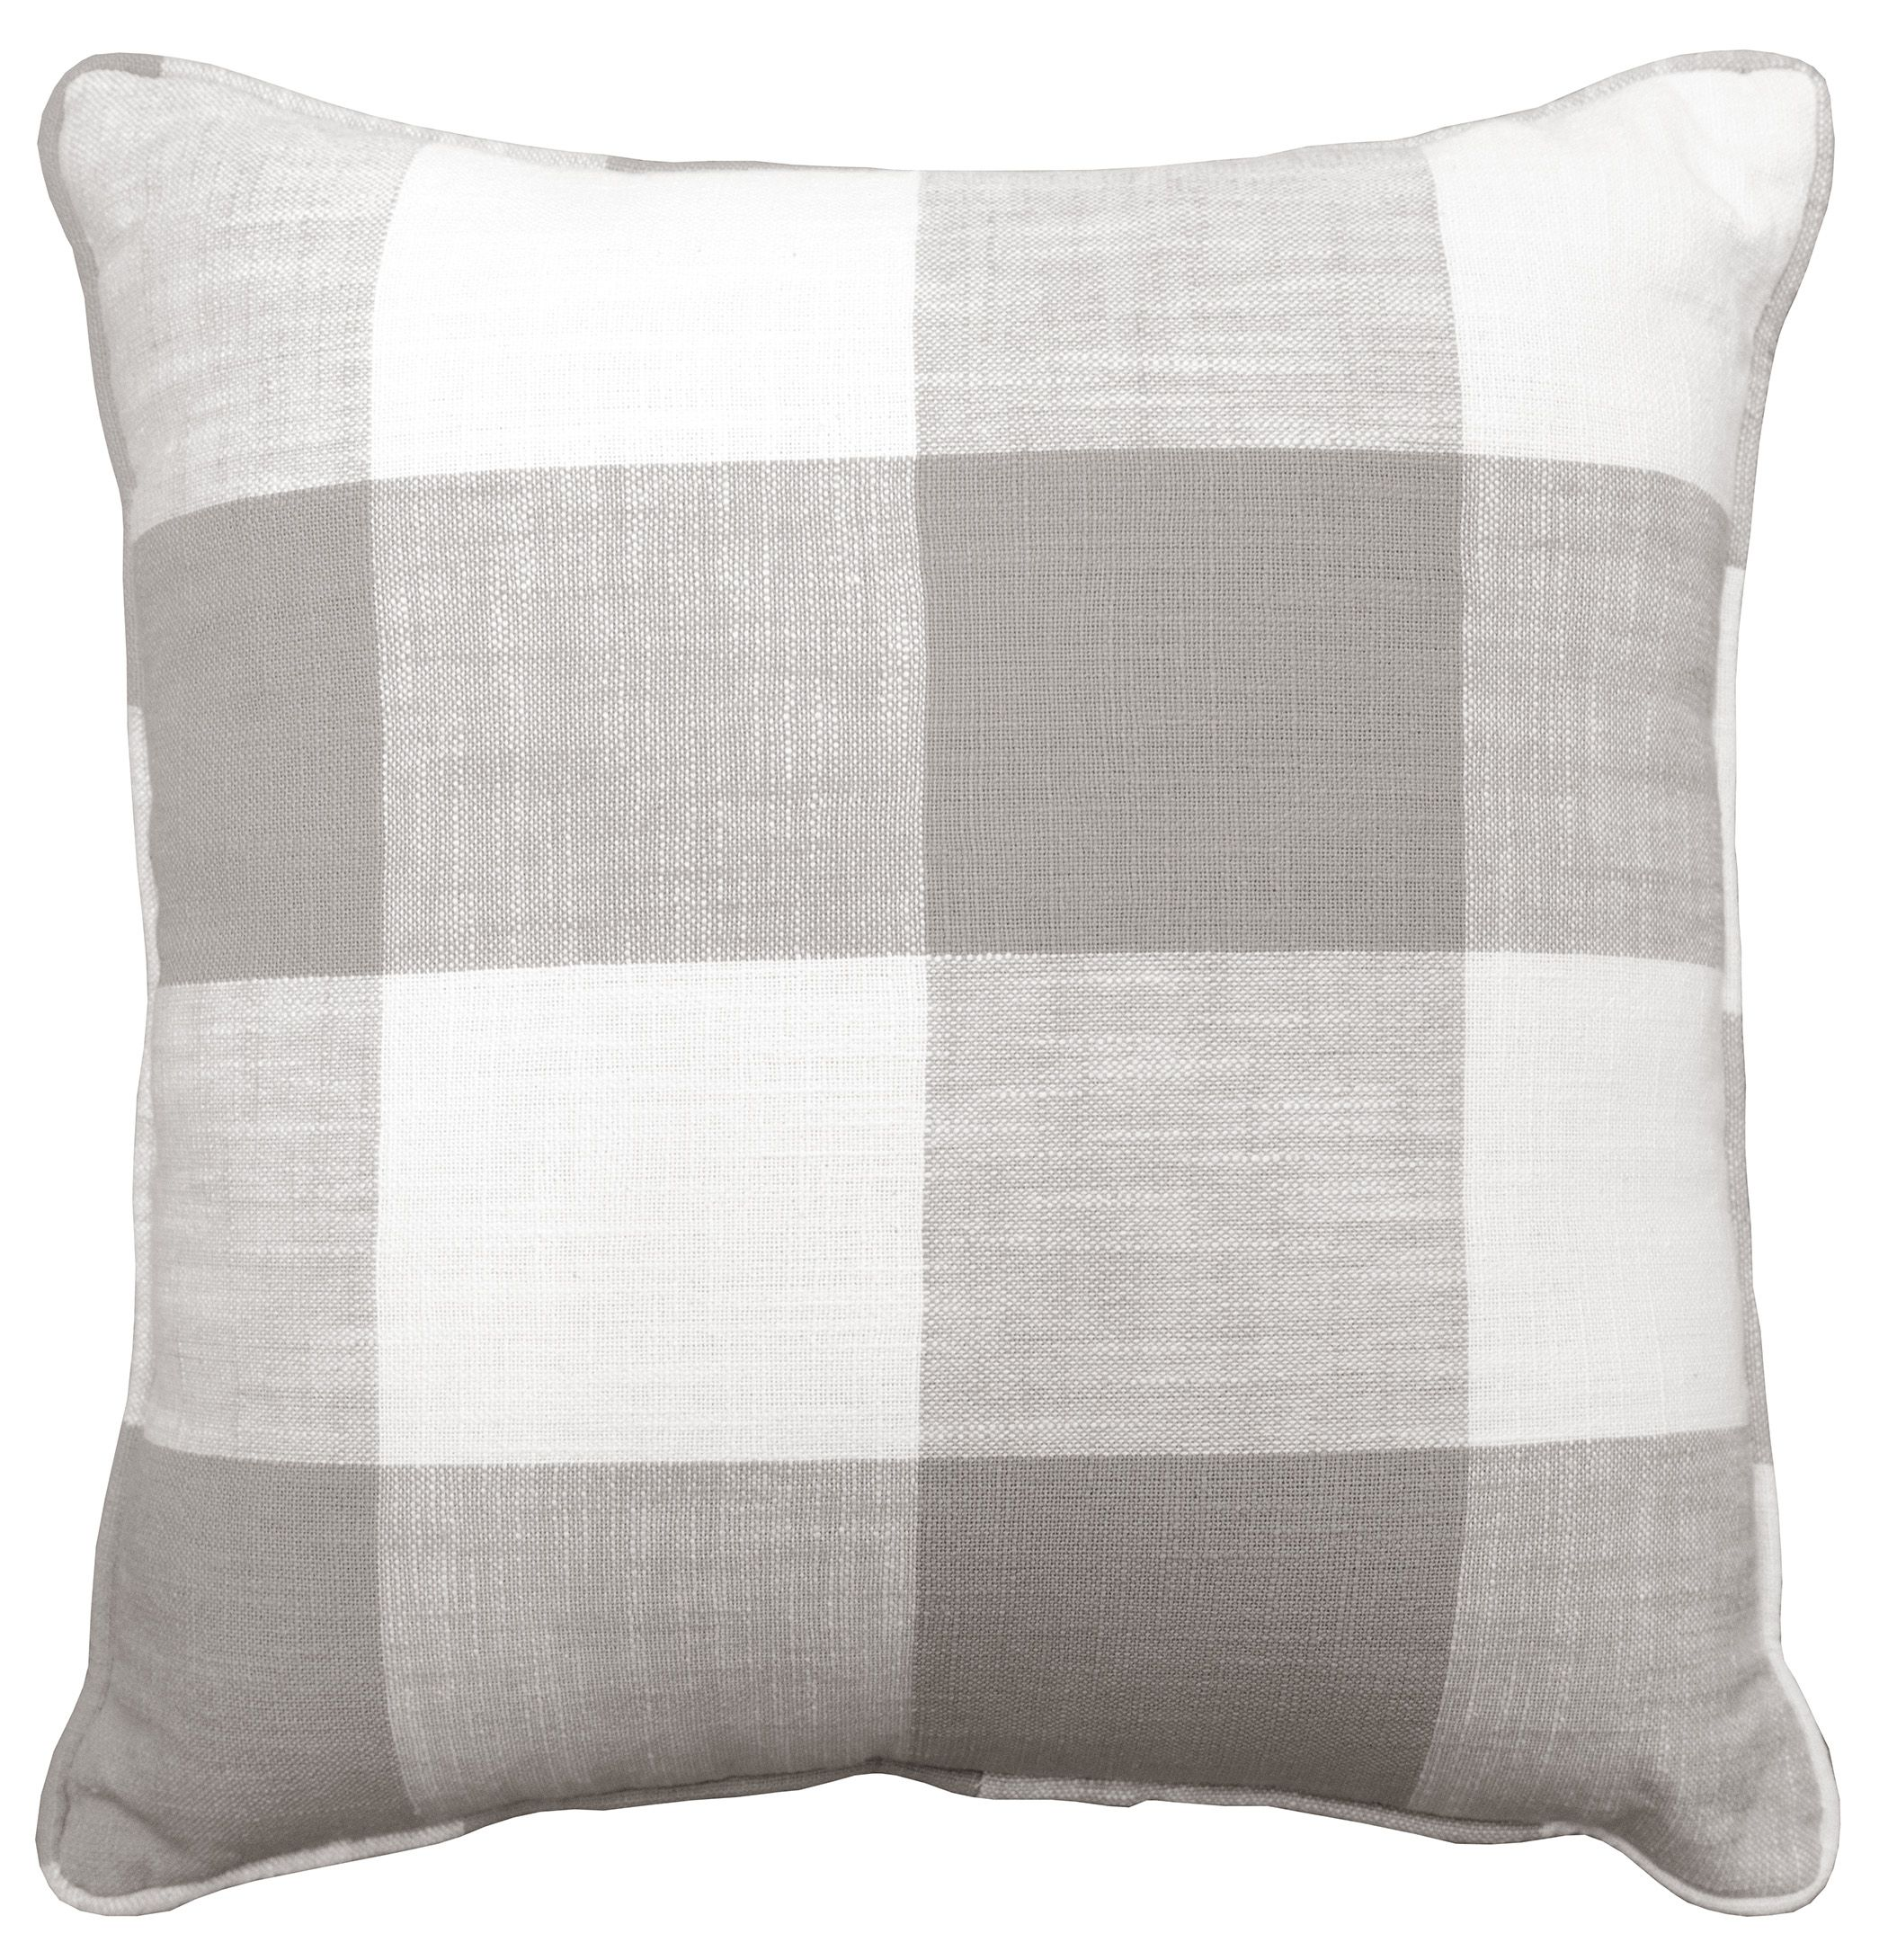 Home In 2020 Pillows Plaid Throw Pillows